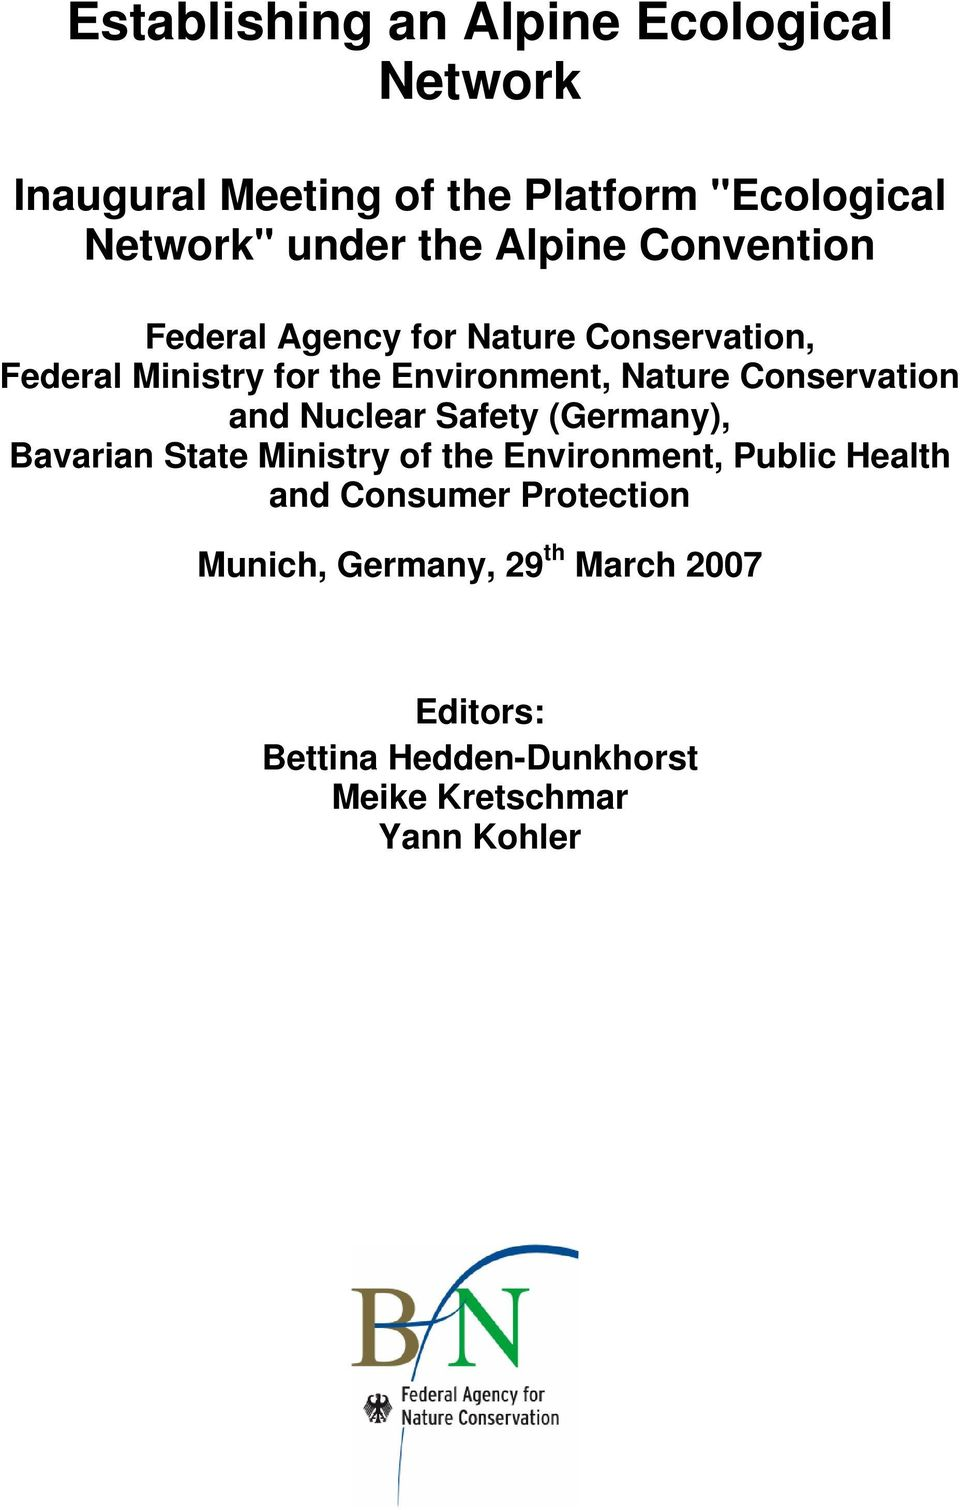 Conservation and Nuclear Safety (Germany), Bavarian State Ministry of the Environment, Public Health and